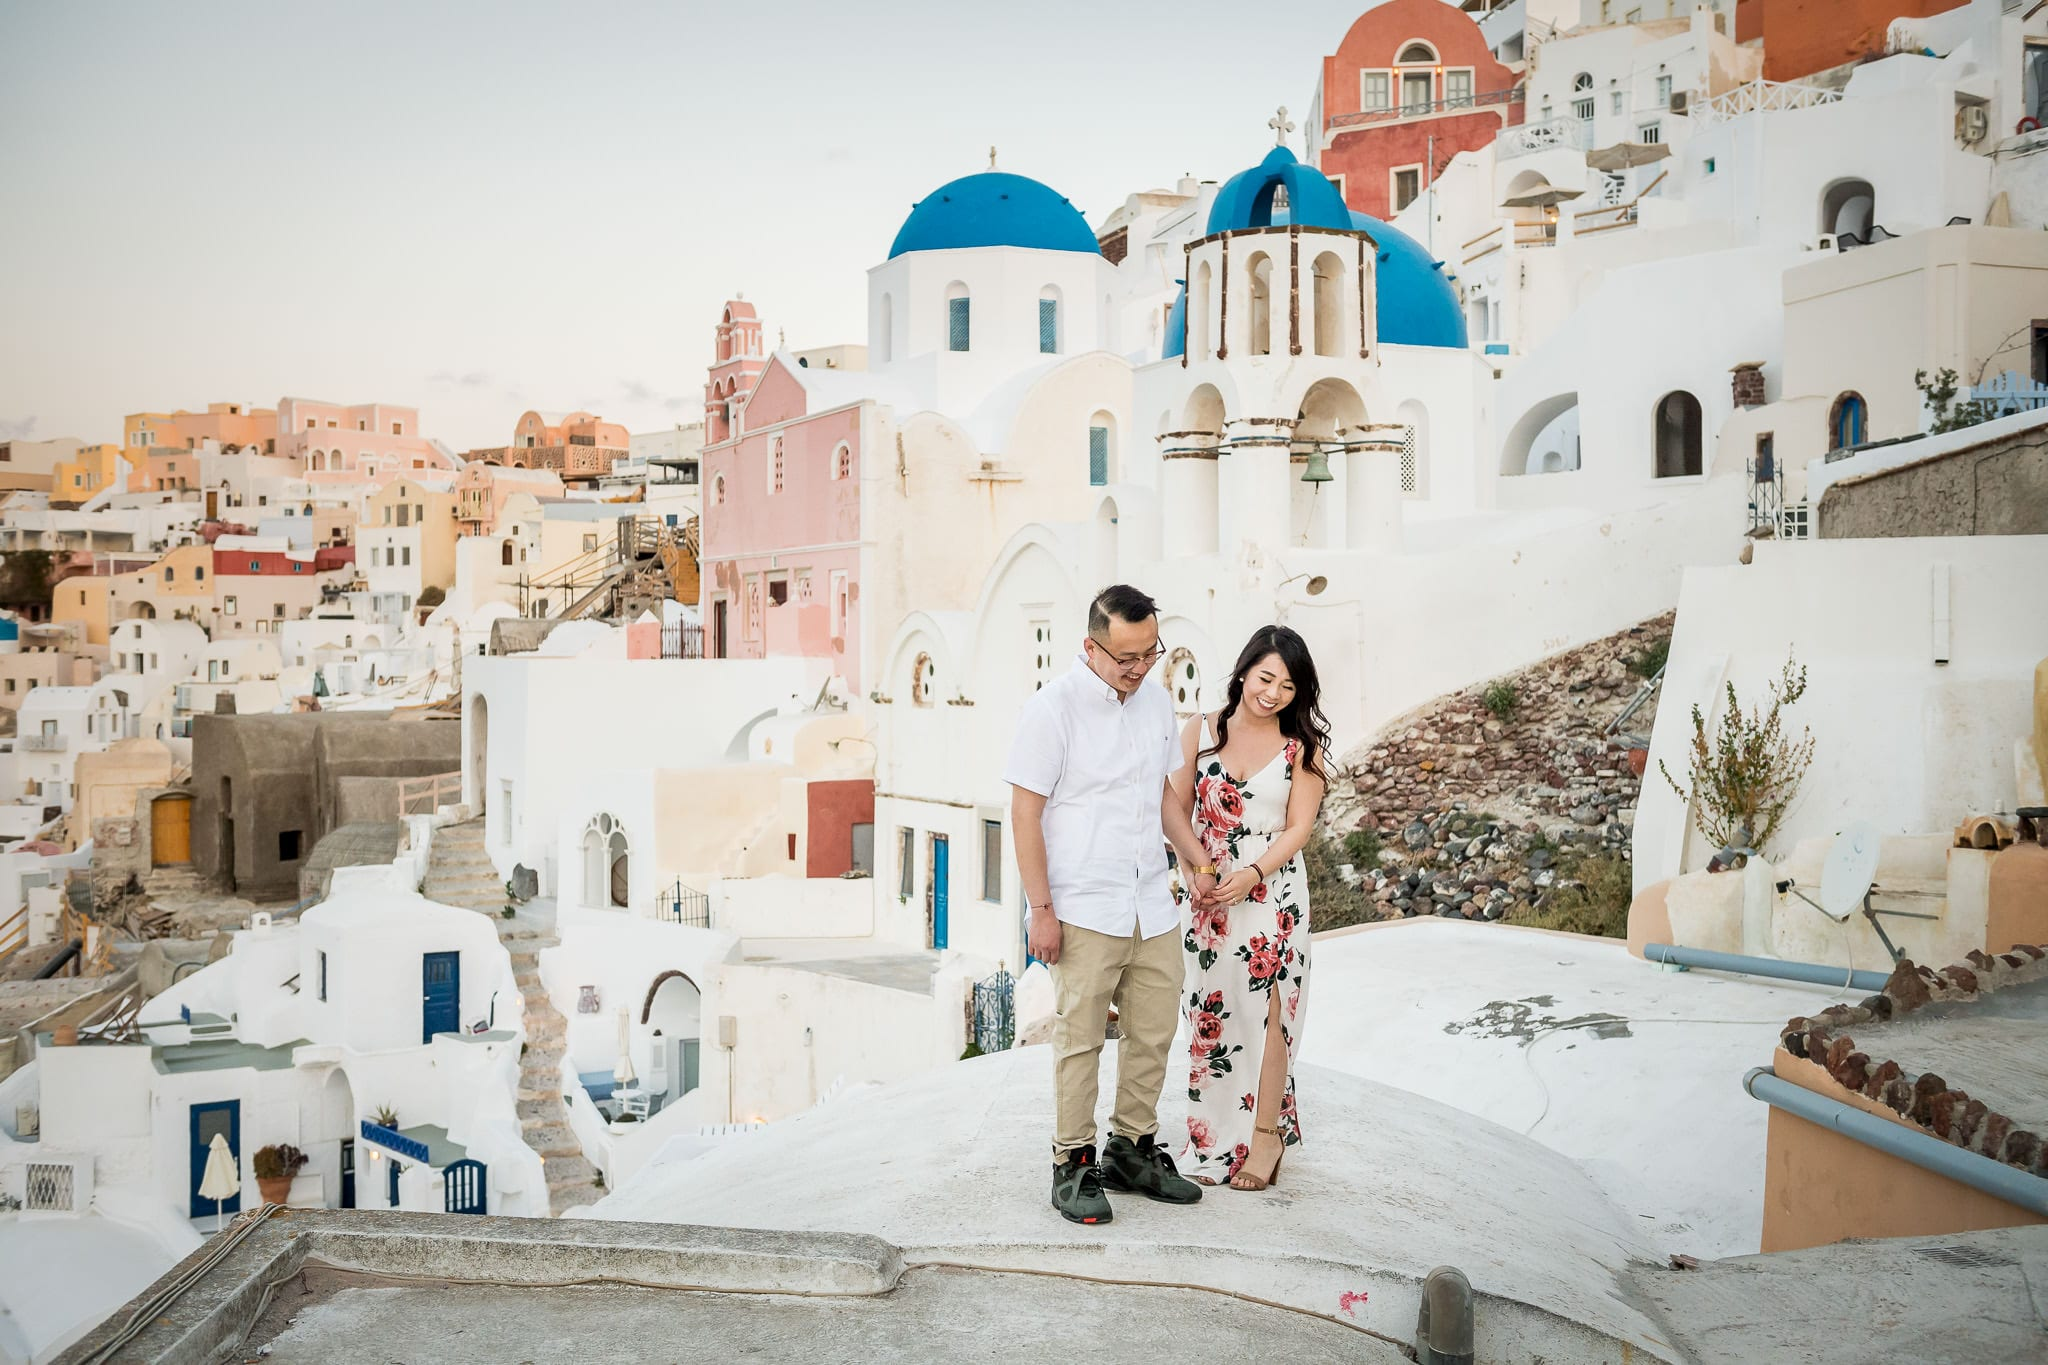 Santorini Honeymoon photo session wide-angle image of a couple holding hands with the colorful village of Oia in the background